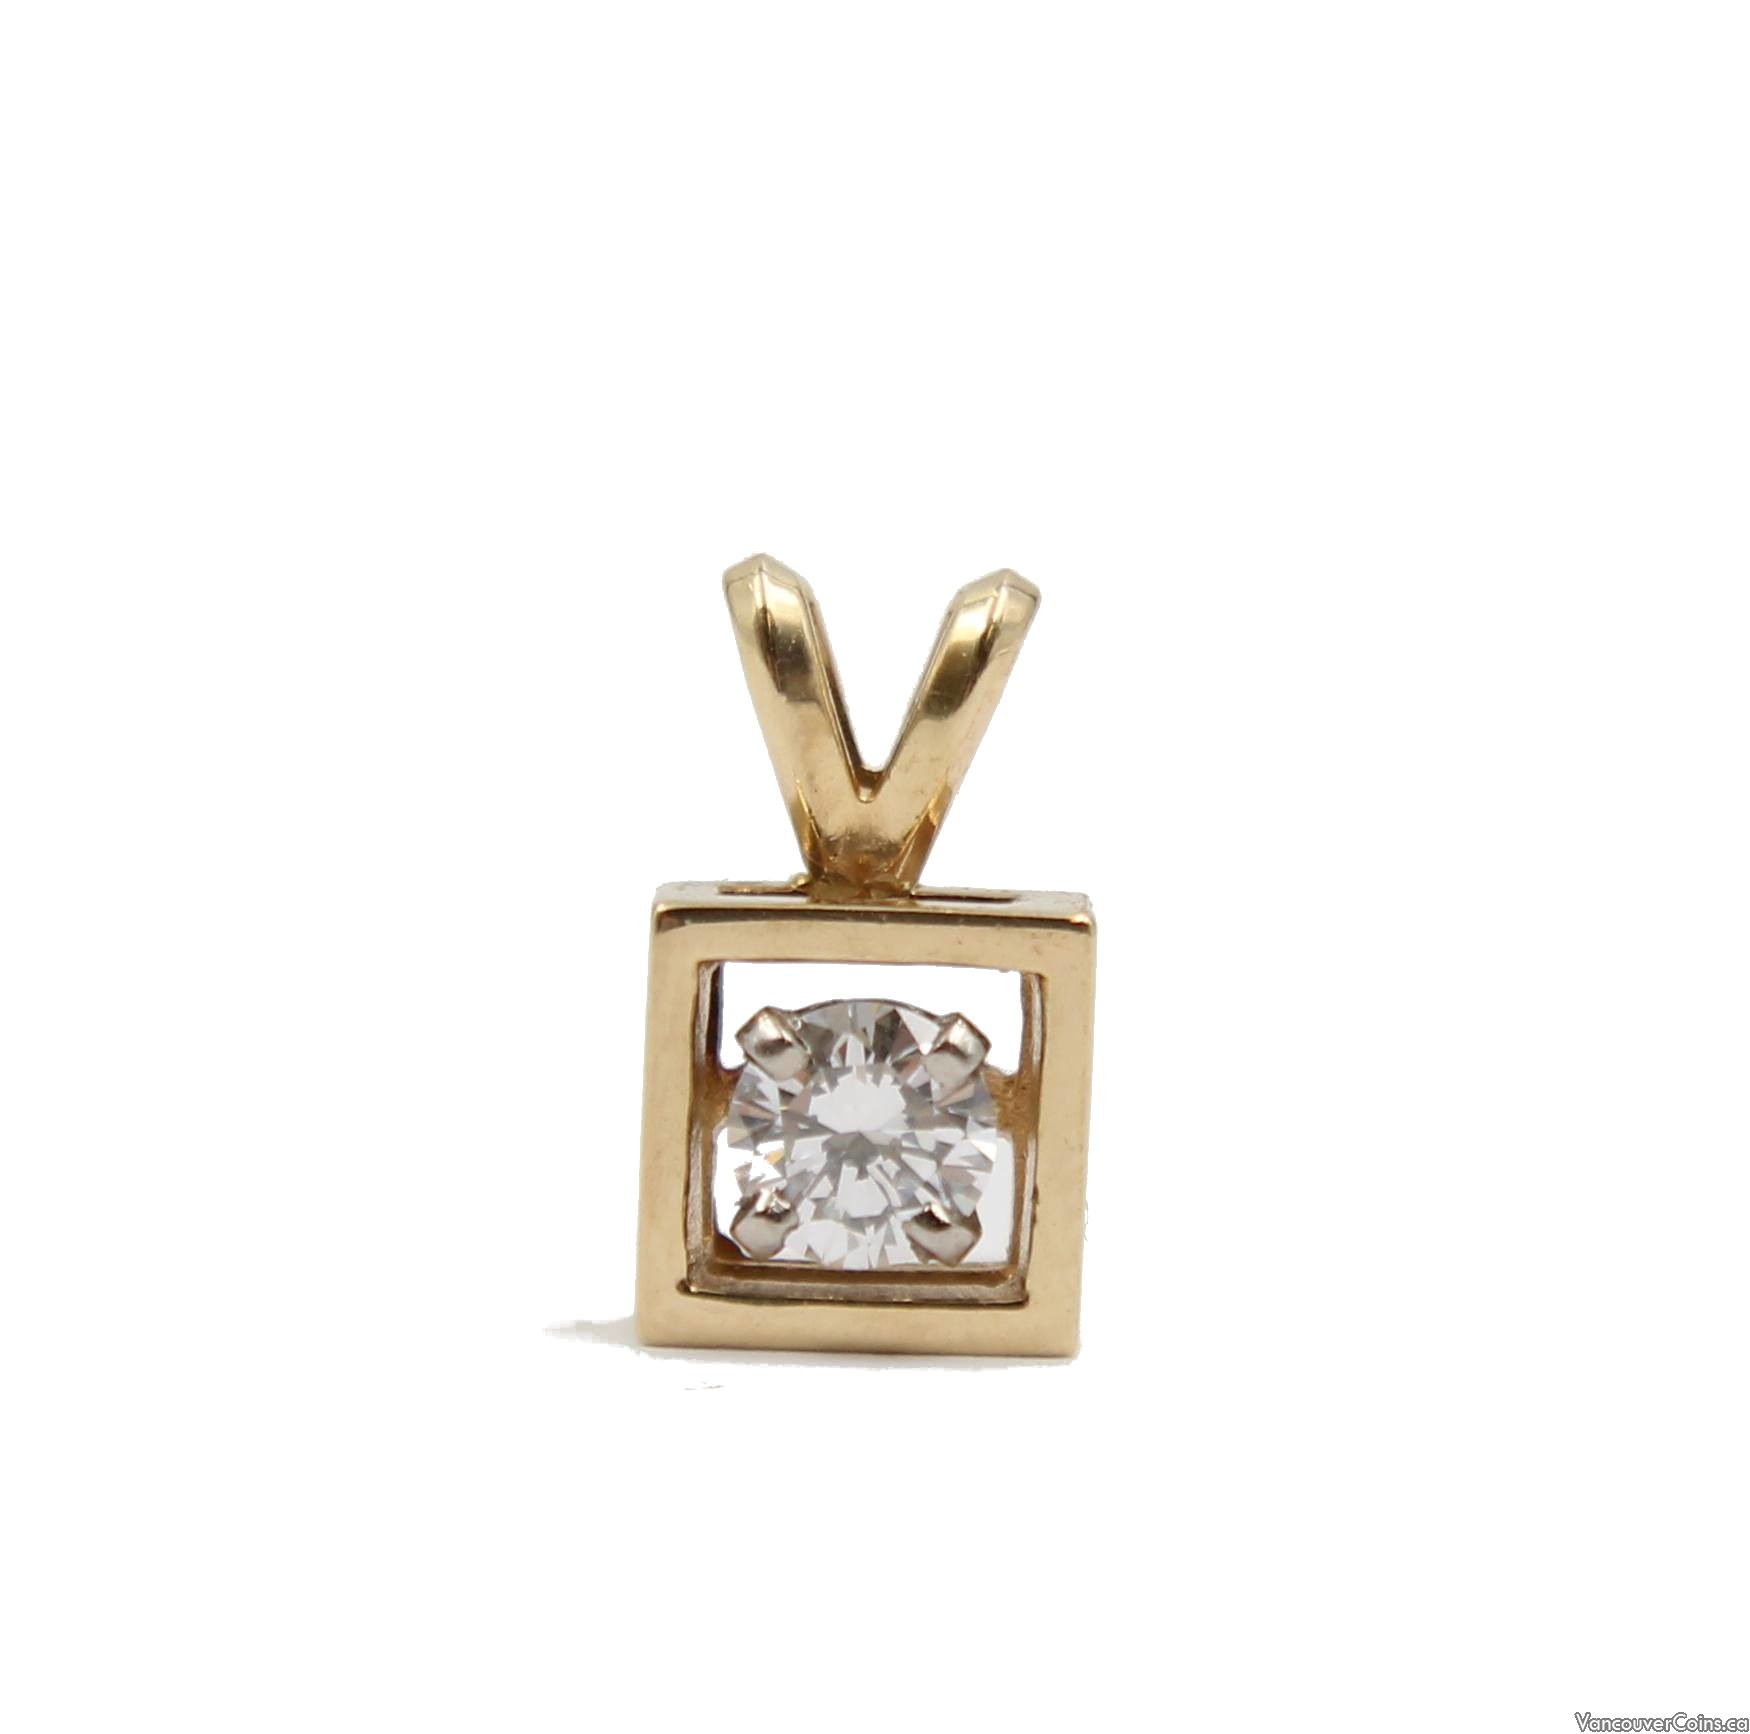 10 Karat Yellow Gold 0.30 Carat Diamond Pendant